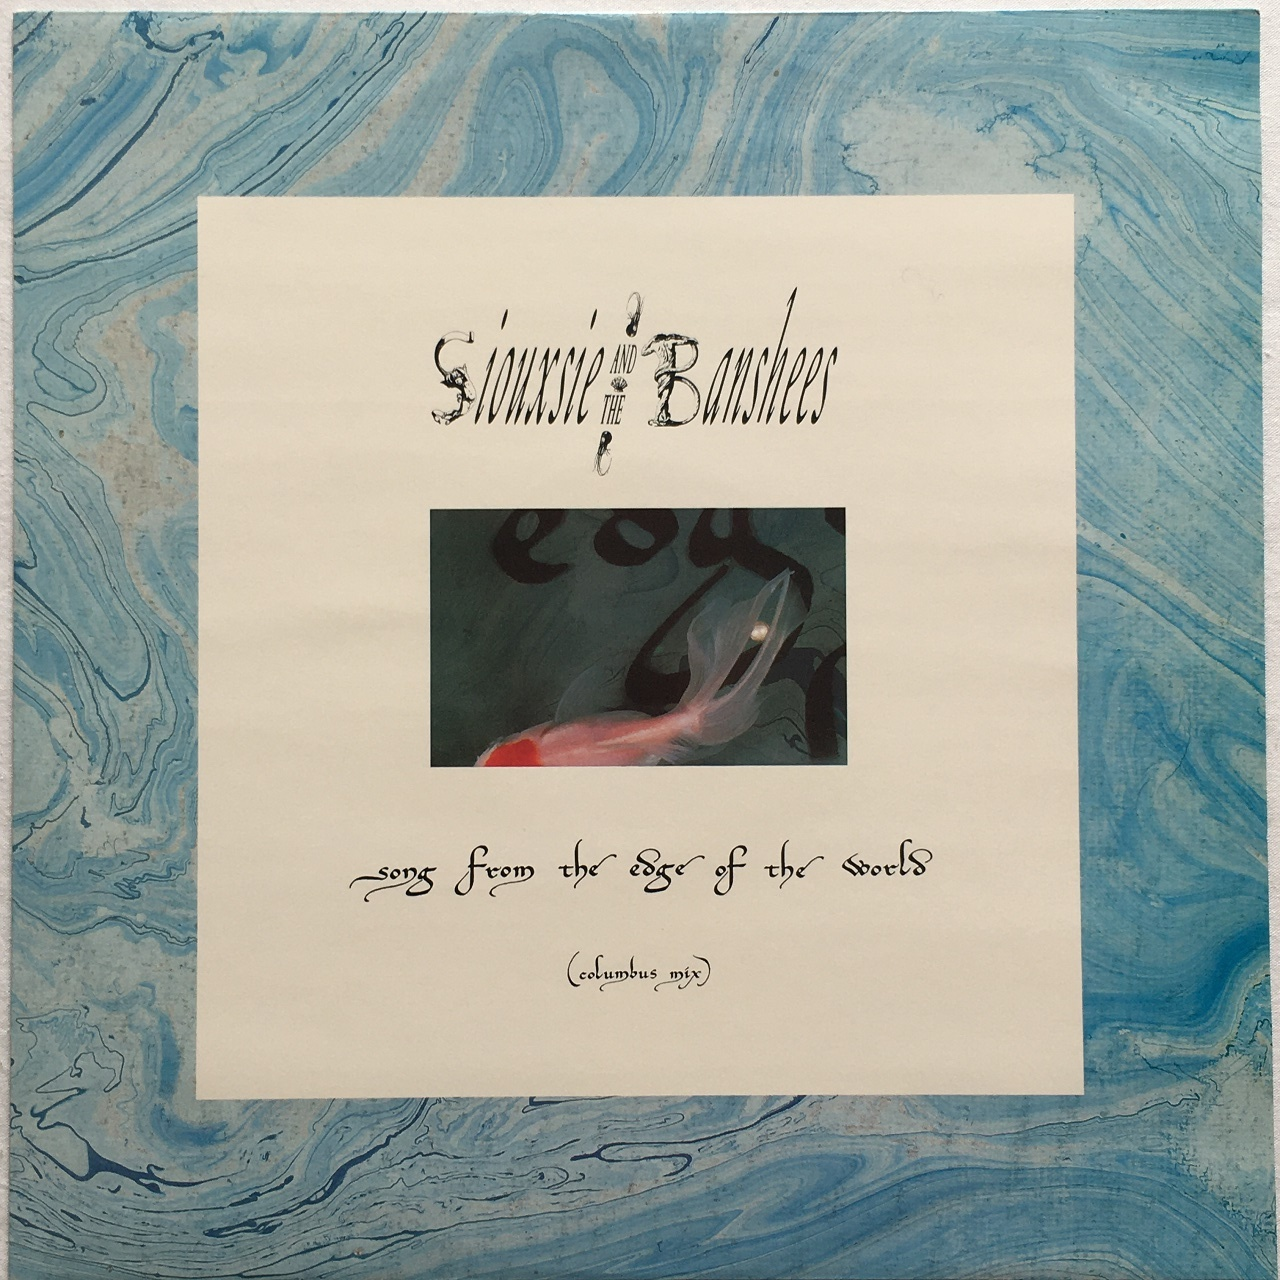 【12inch・英盤】Siouxsie and The Banshees / Song From The Edge Of The World (Columbus Mix)